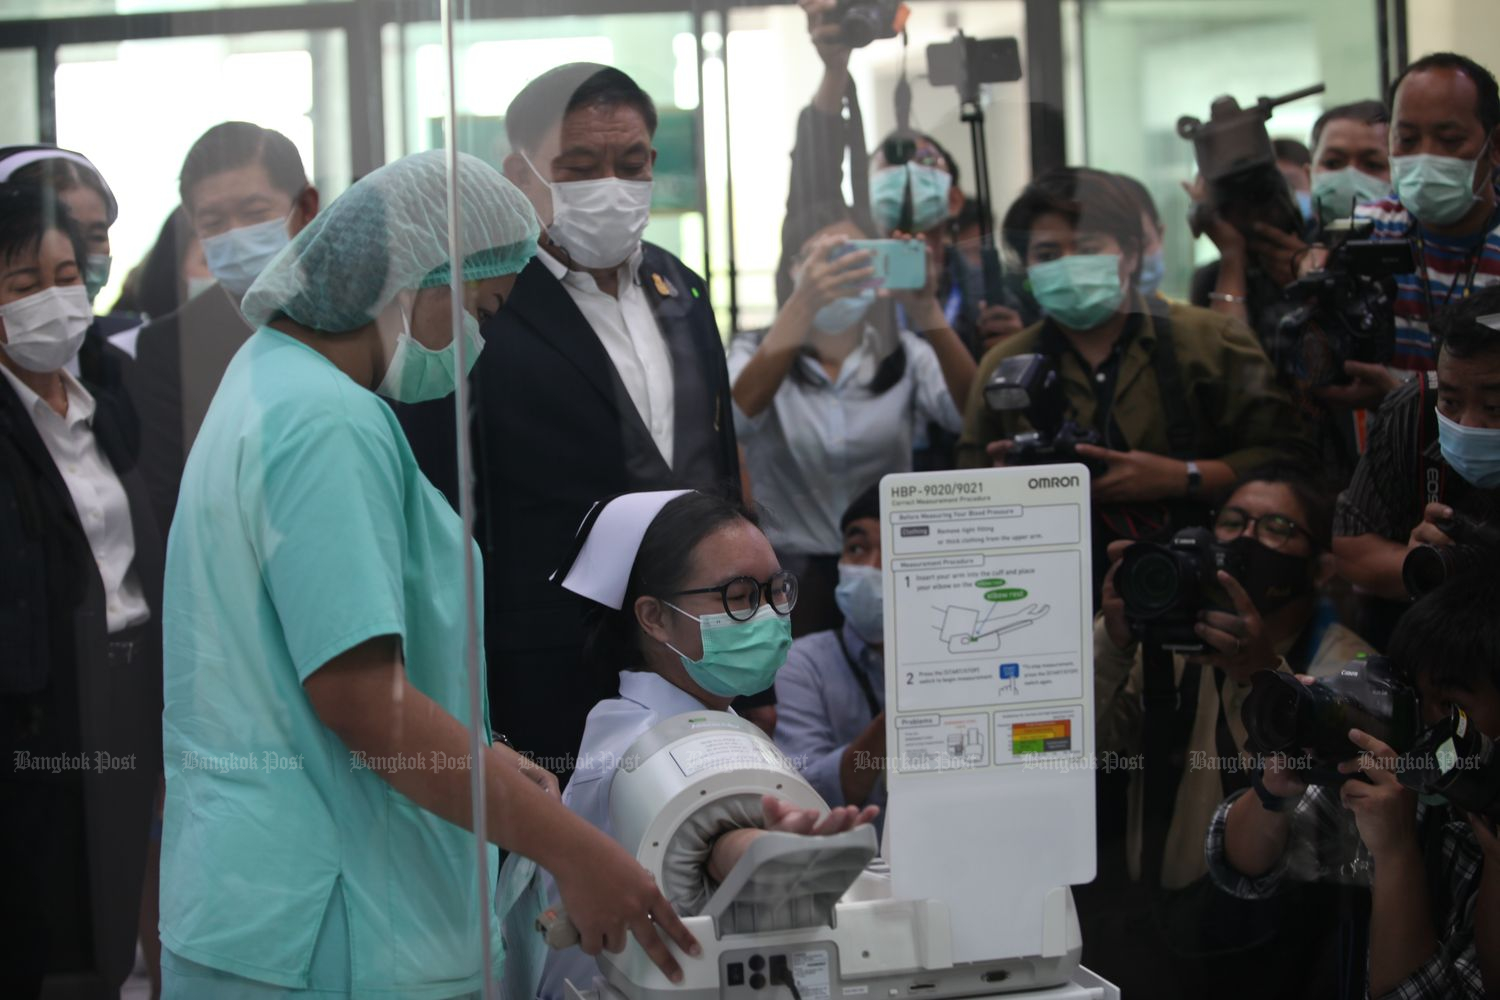 Bangkok Governor Assawin Kwanmuang observes a demonstration of Covid-19 vaccine injection at Bang Khun Thian Geriatric Hospital in Bangkok on Saturday. Vaccinations will begin in high-risk areas nationwide on Sunday. (Photo by Apichart Jinakul)